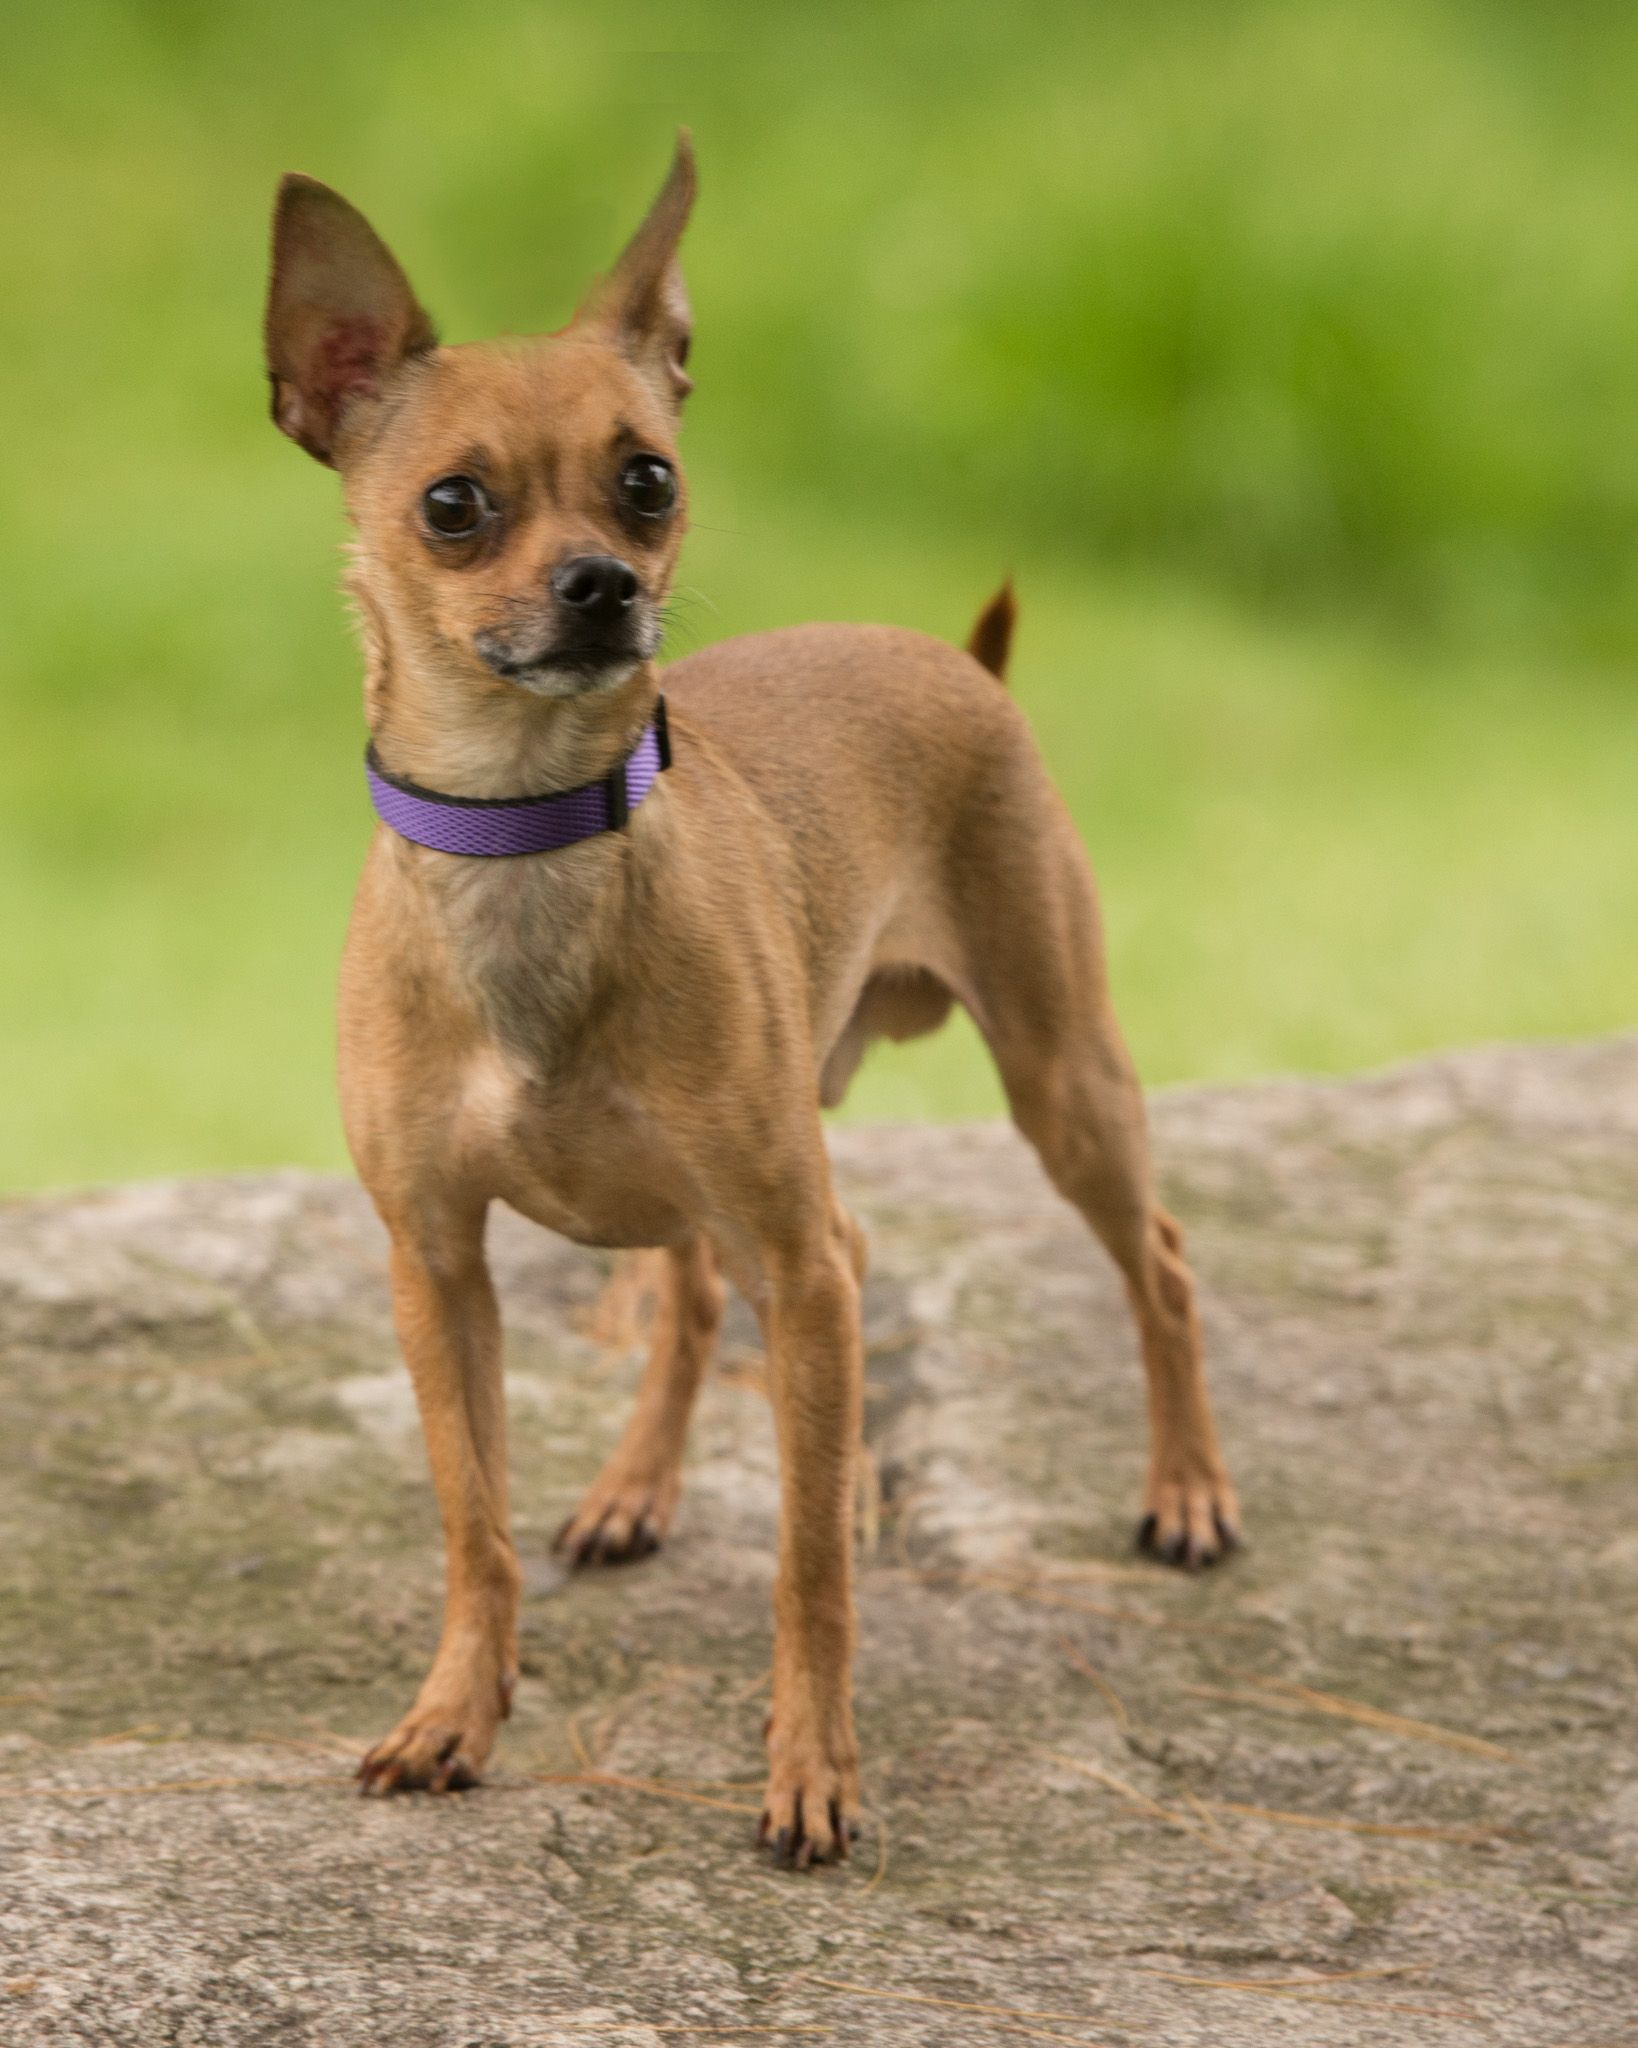 Chihuahua dog for Adoption in Howell, MI. ADN561095 on